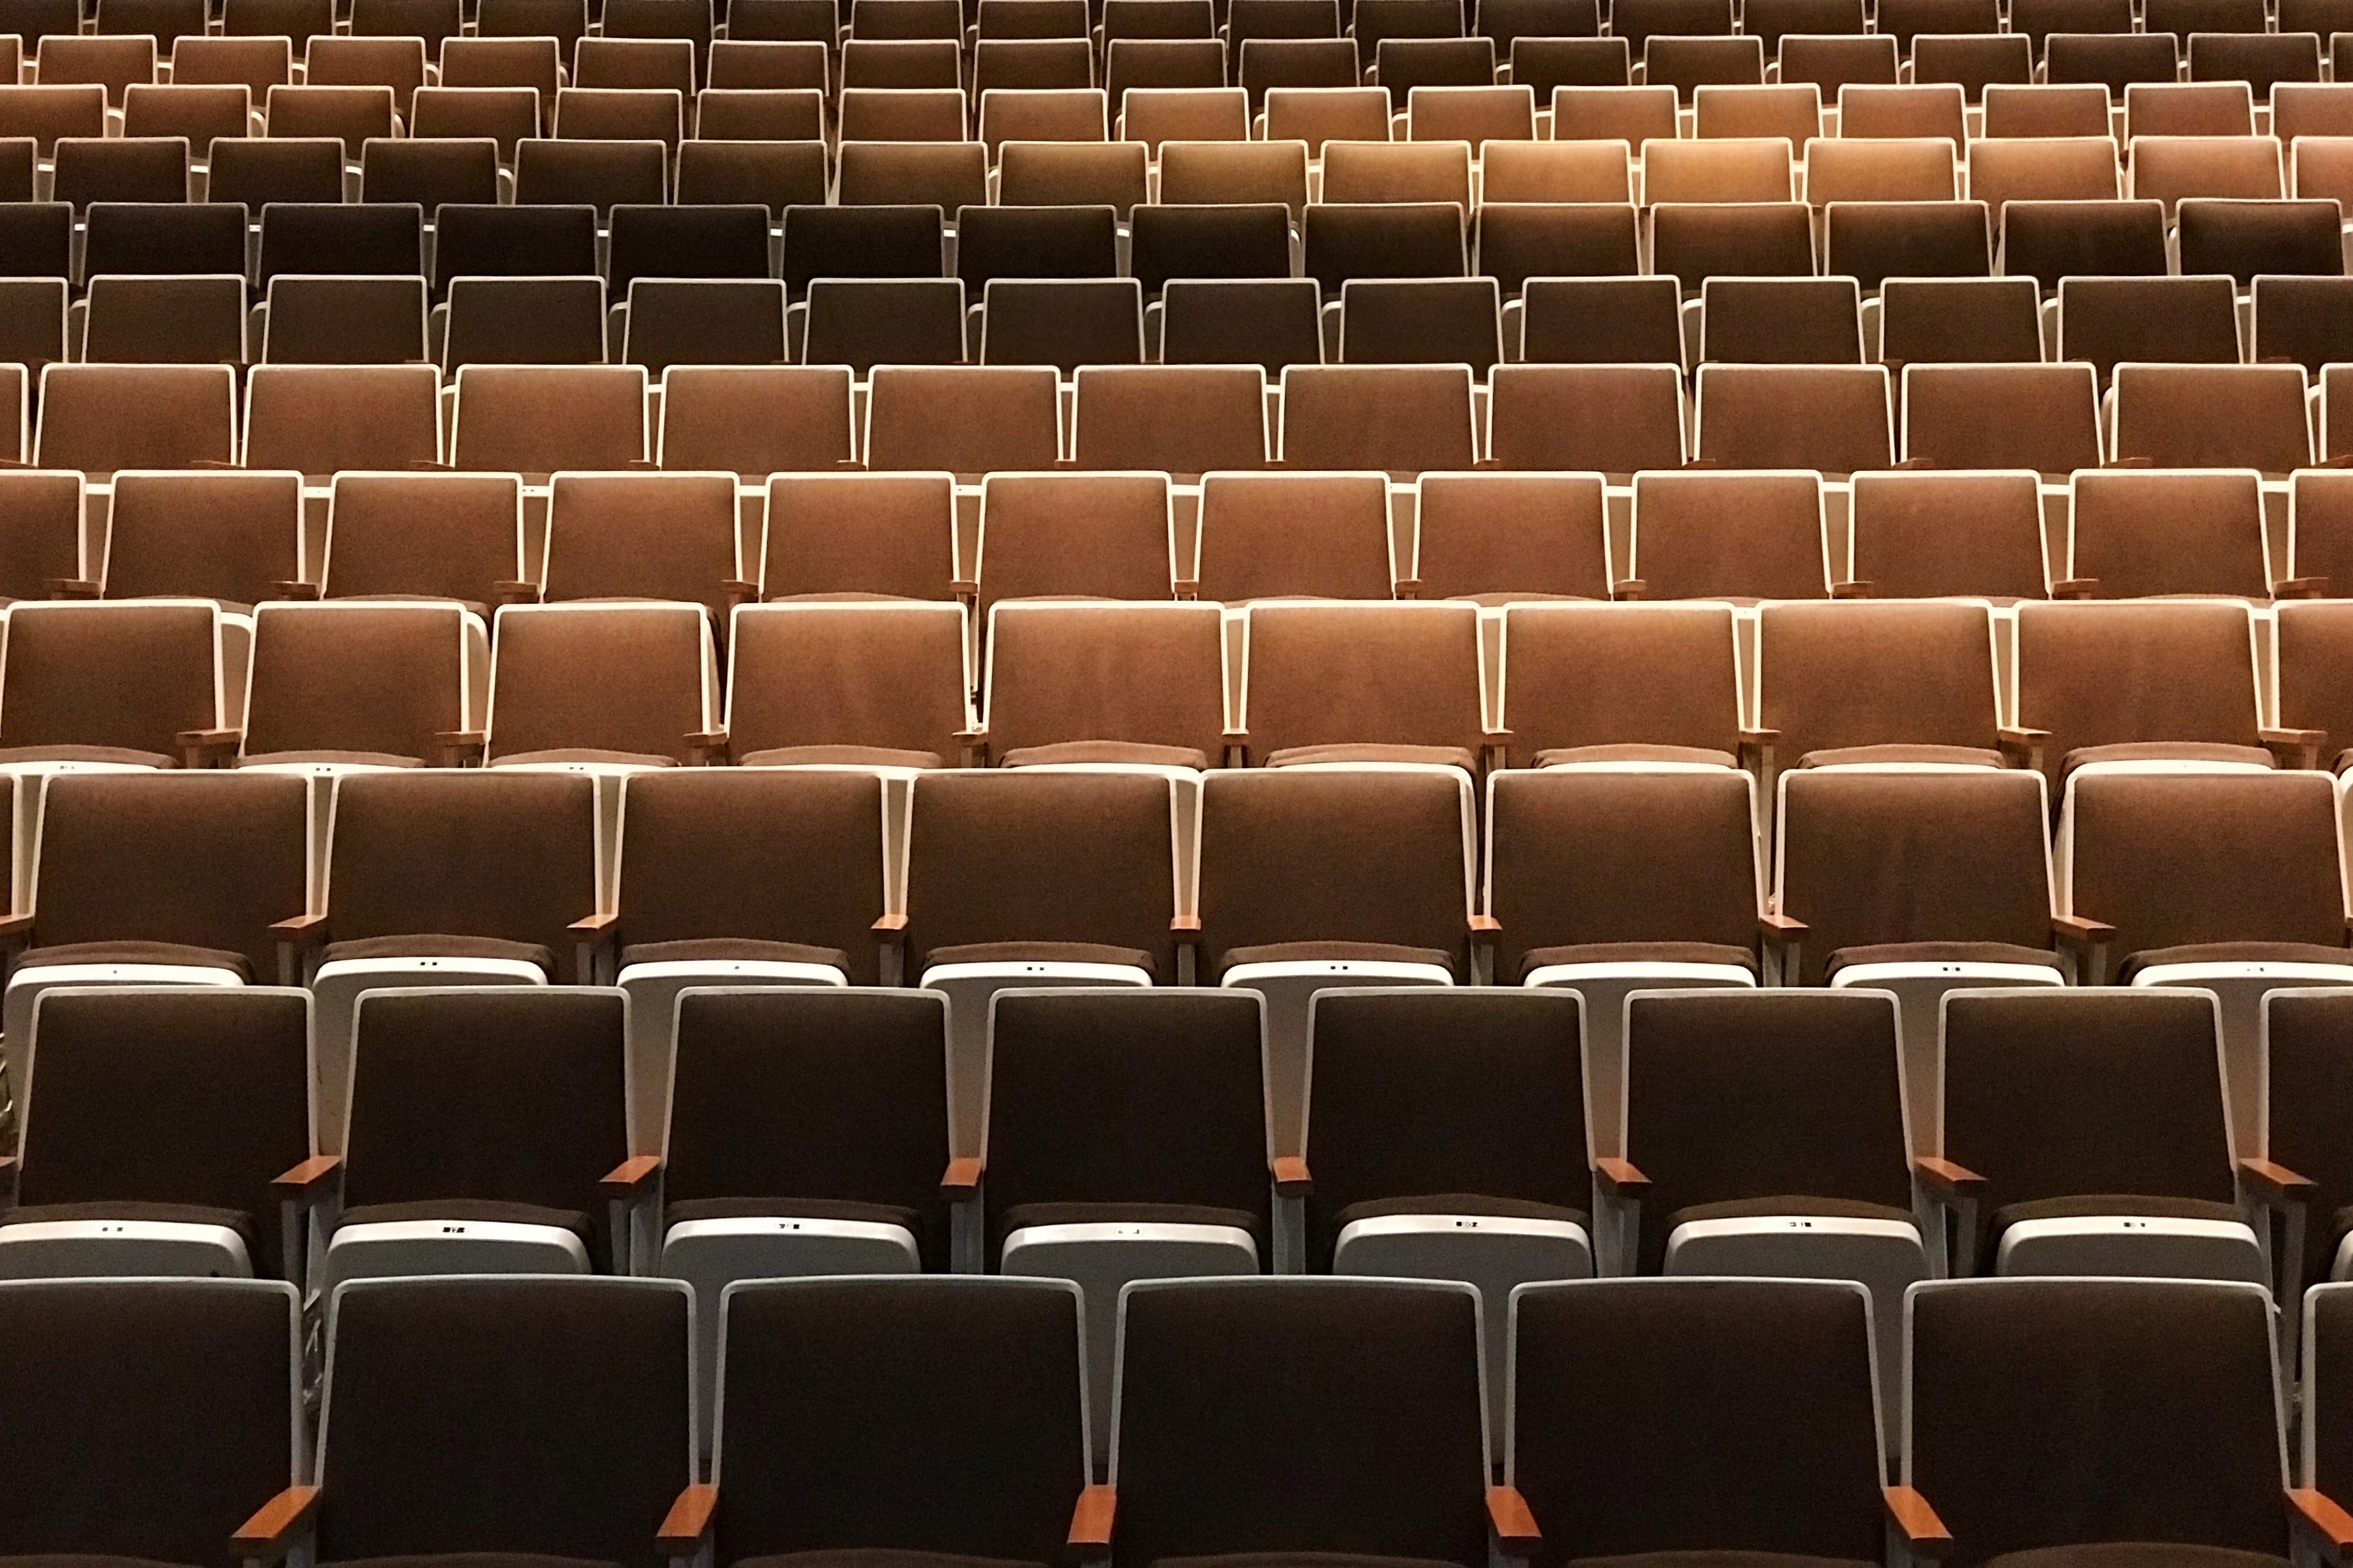 Empty brown leather seats in a large auditorium